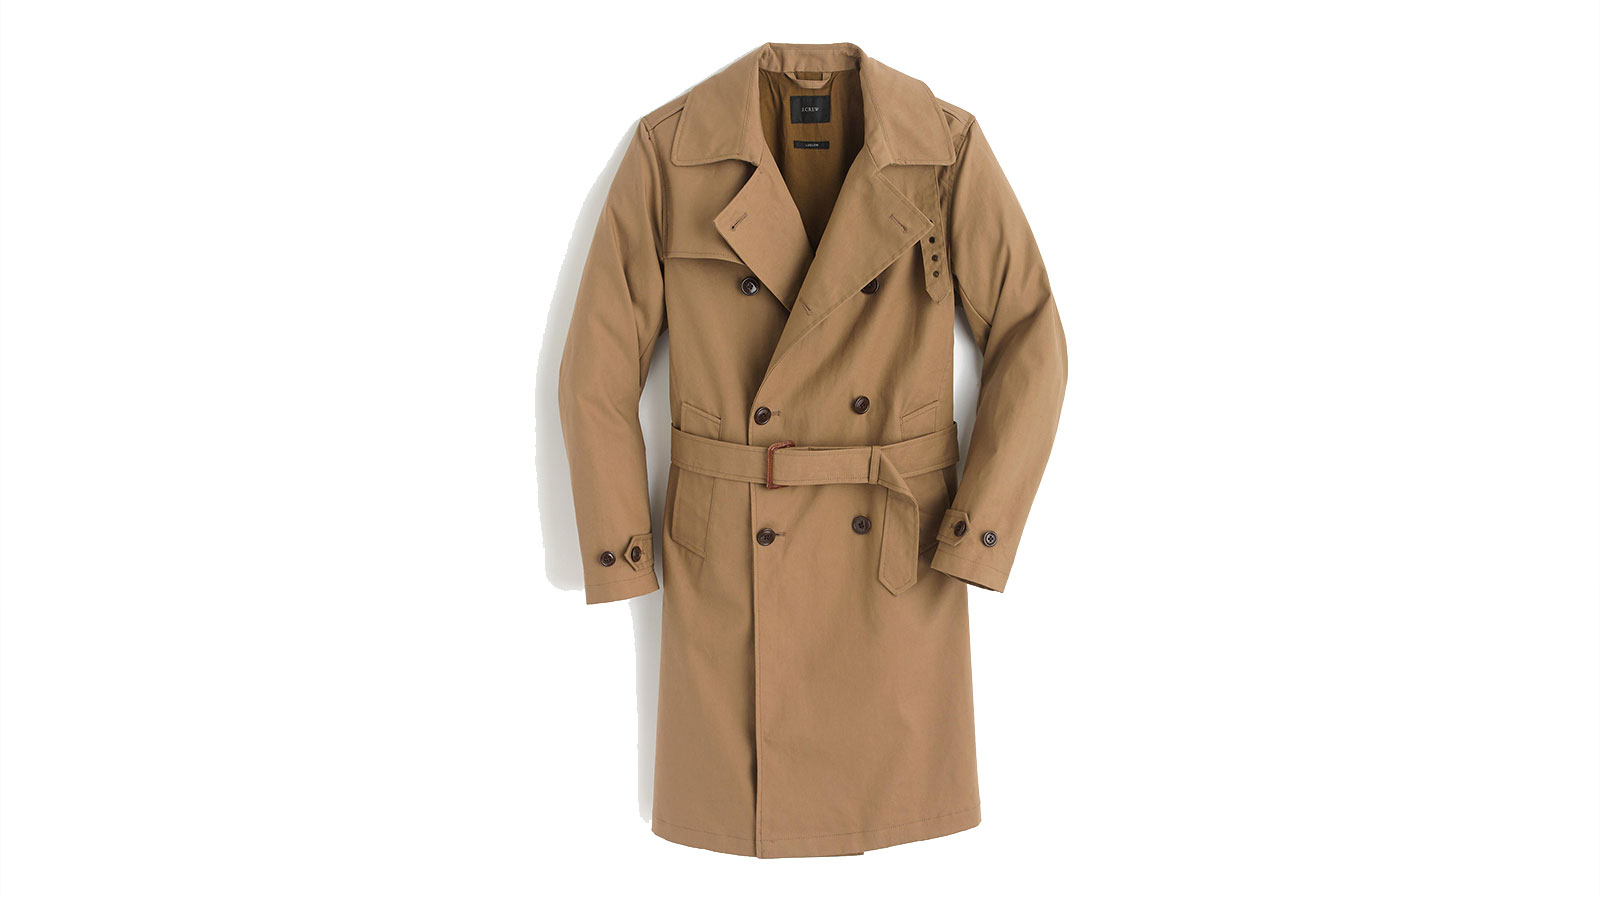 J. Crew Men's Ludlow Double-Breasted Water-Repellent Trench Coat | The Best Men's Trench Coats